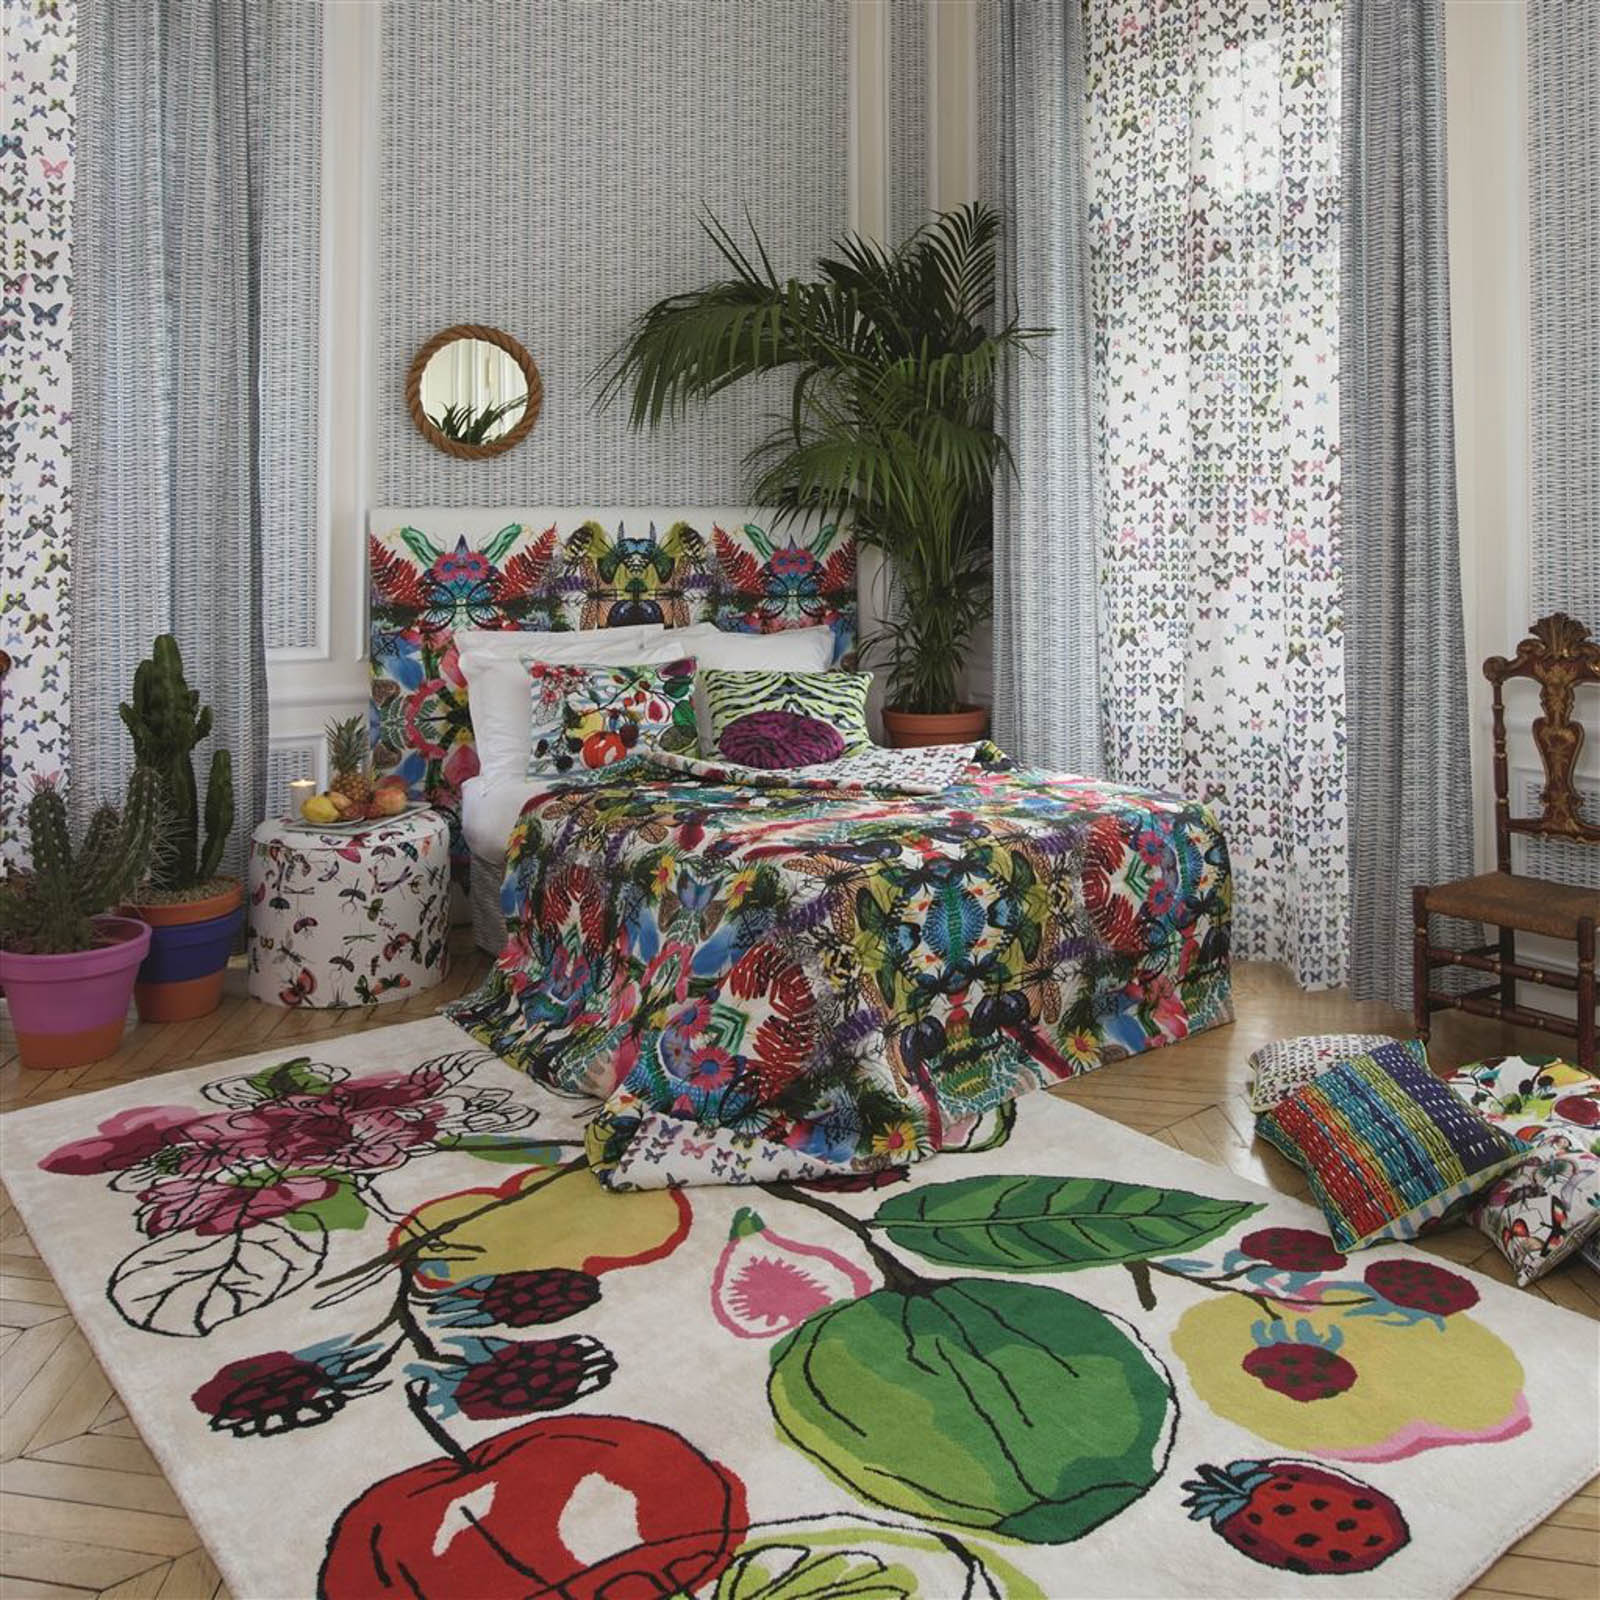 Manaos Perroquet Rugs by Christian Lacroix